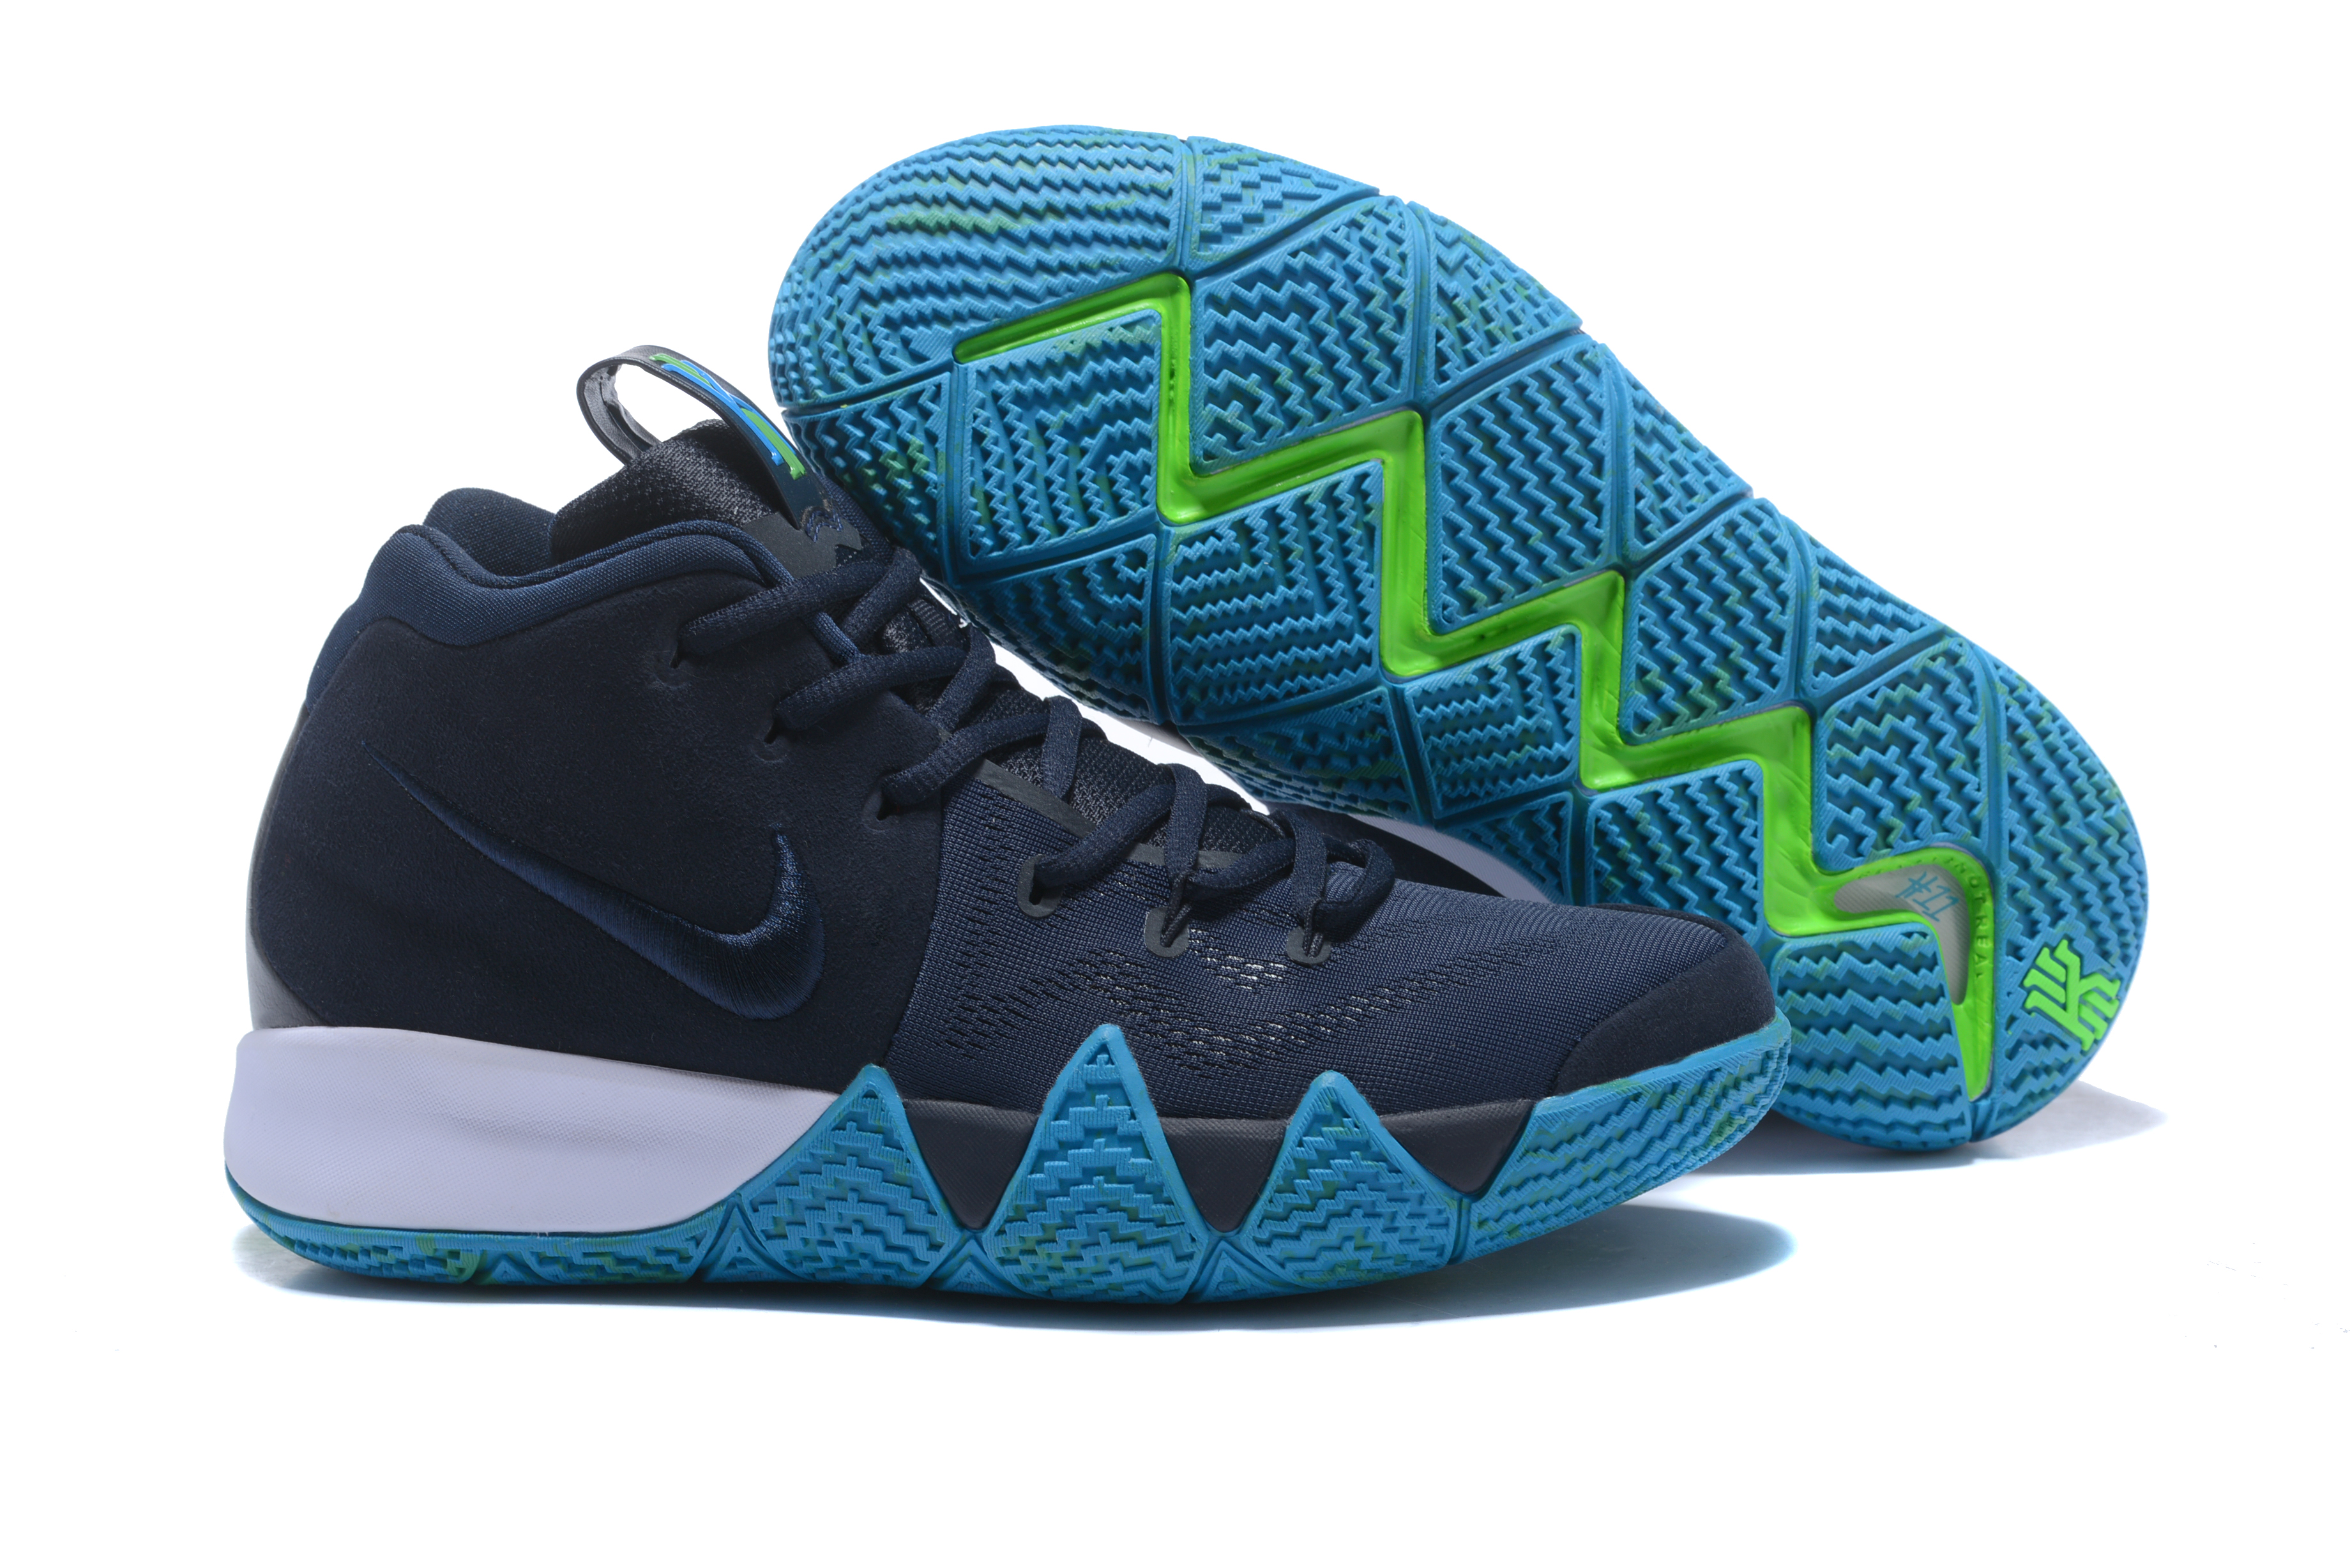 New Nike Kyrie 4 Dark Blue Jade Shoes